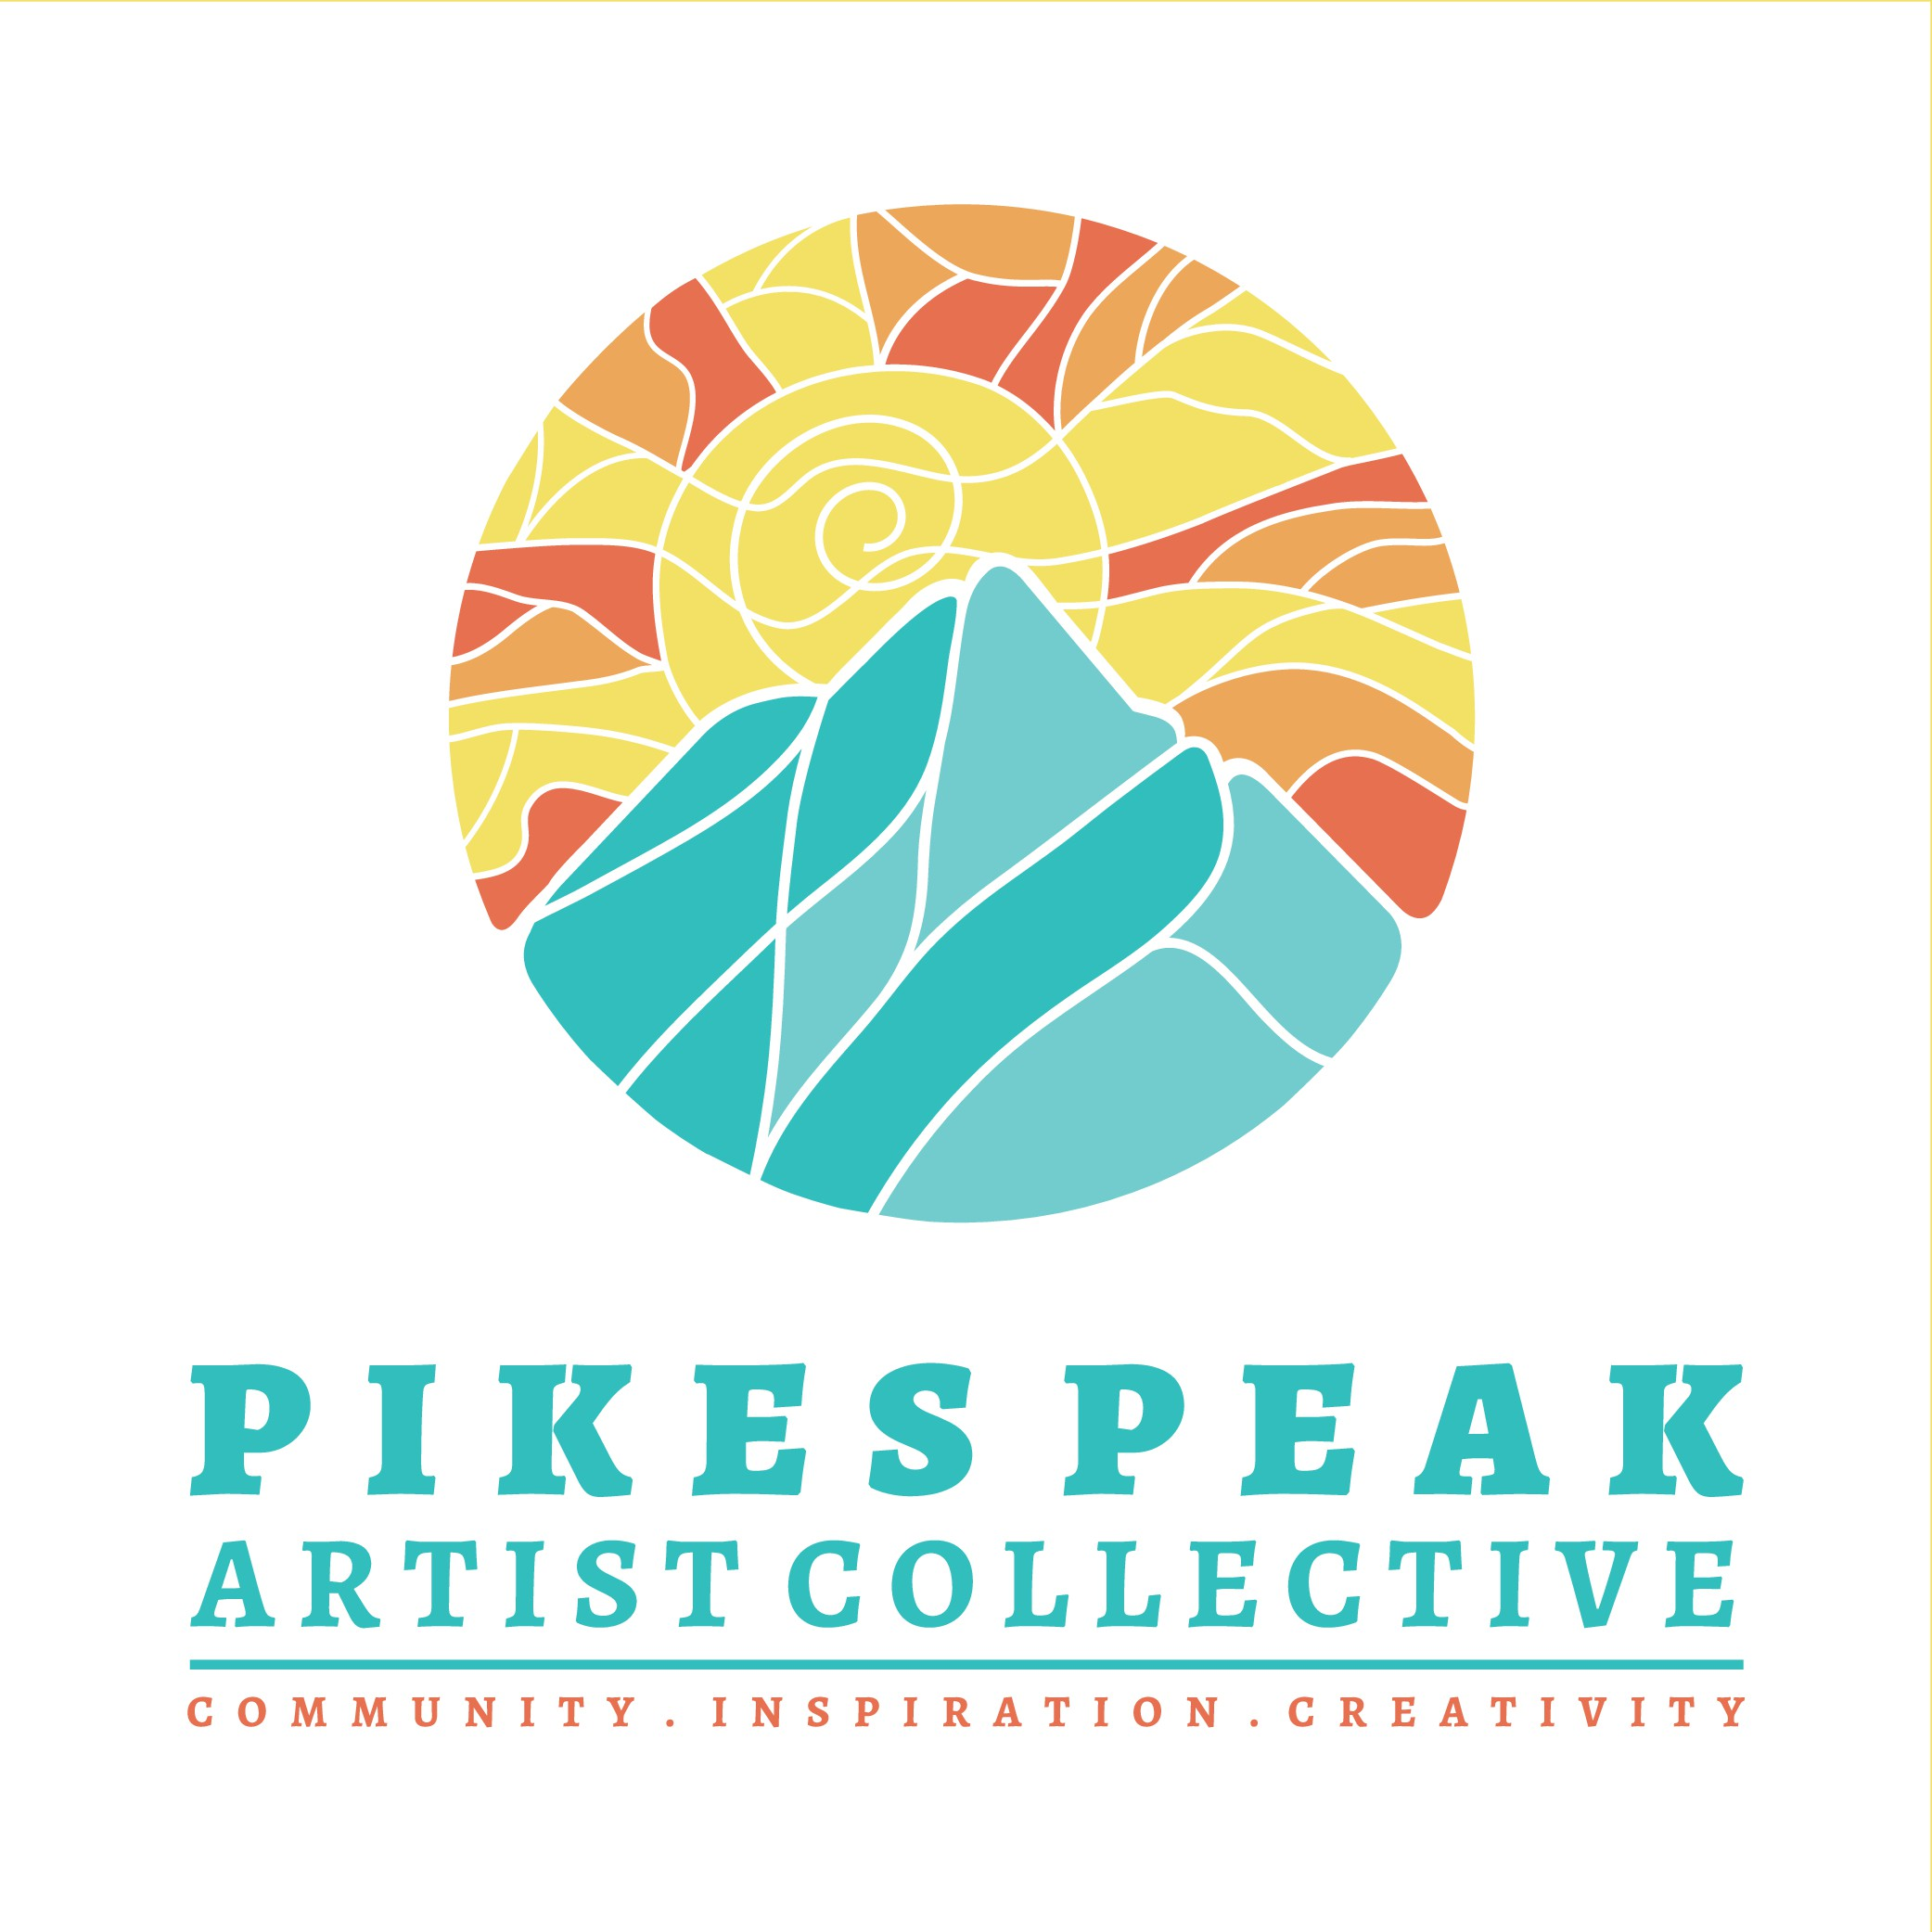 Design a logo for an artist collective studio located at the base of Pikes Peak mountain